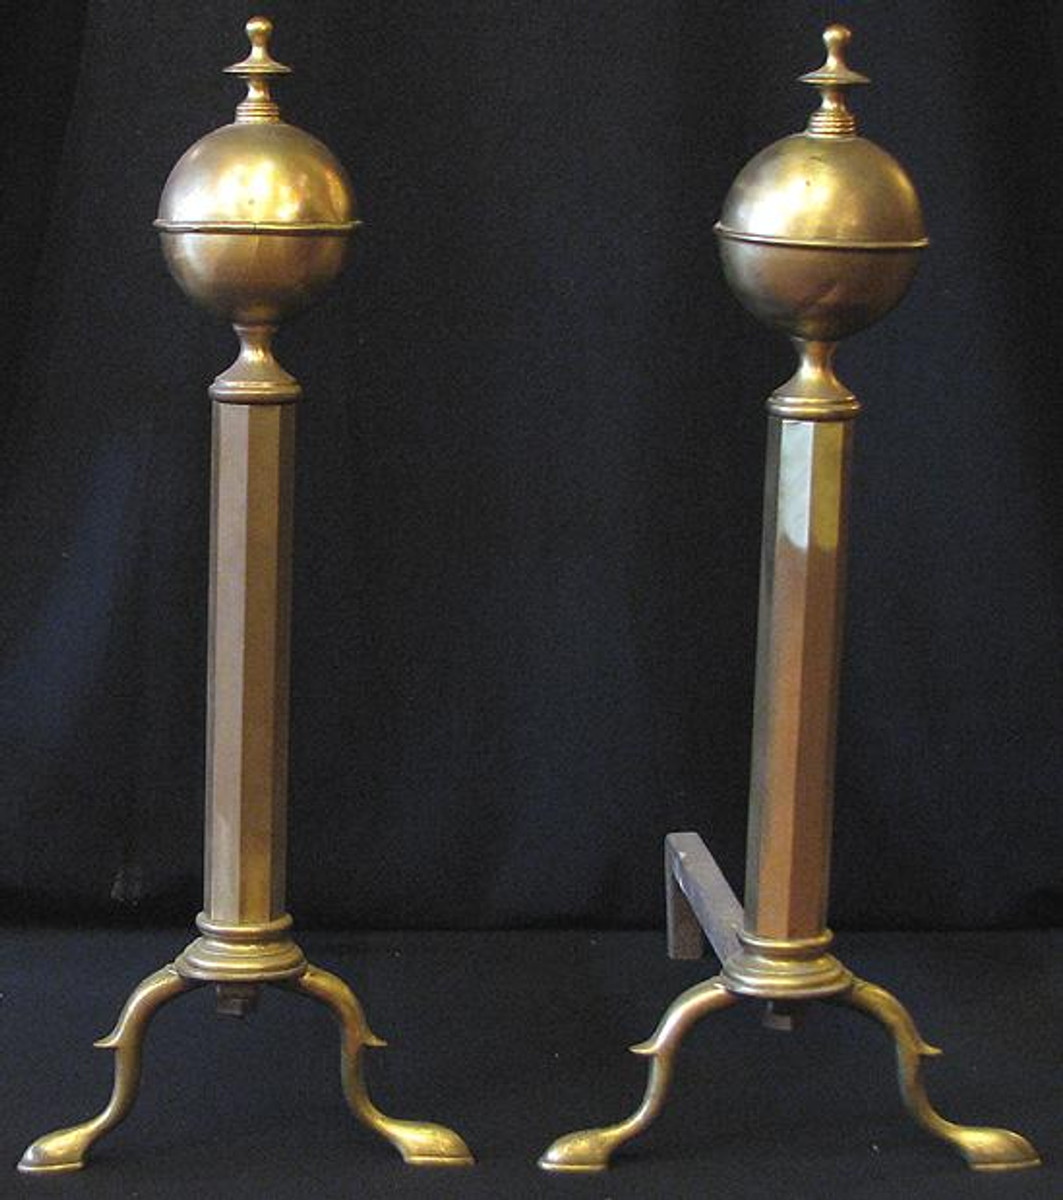 Pair of antique brass andirons with ball and finial tops and pad feet.